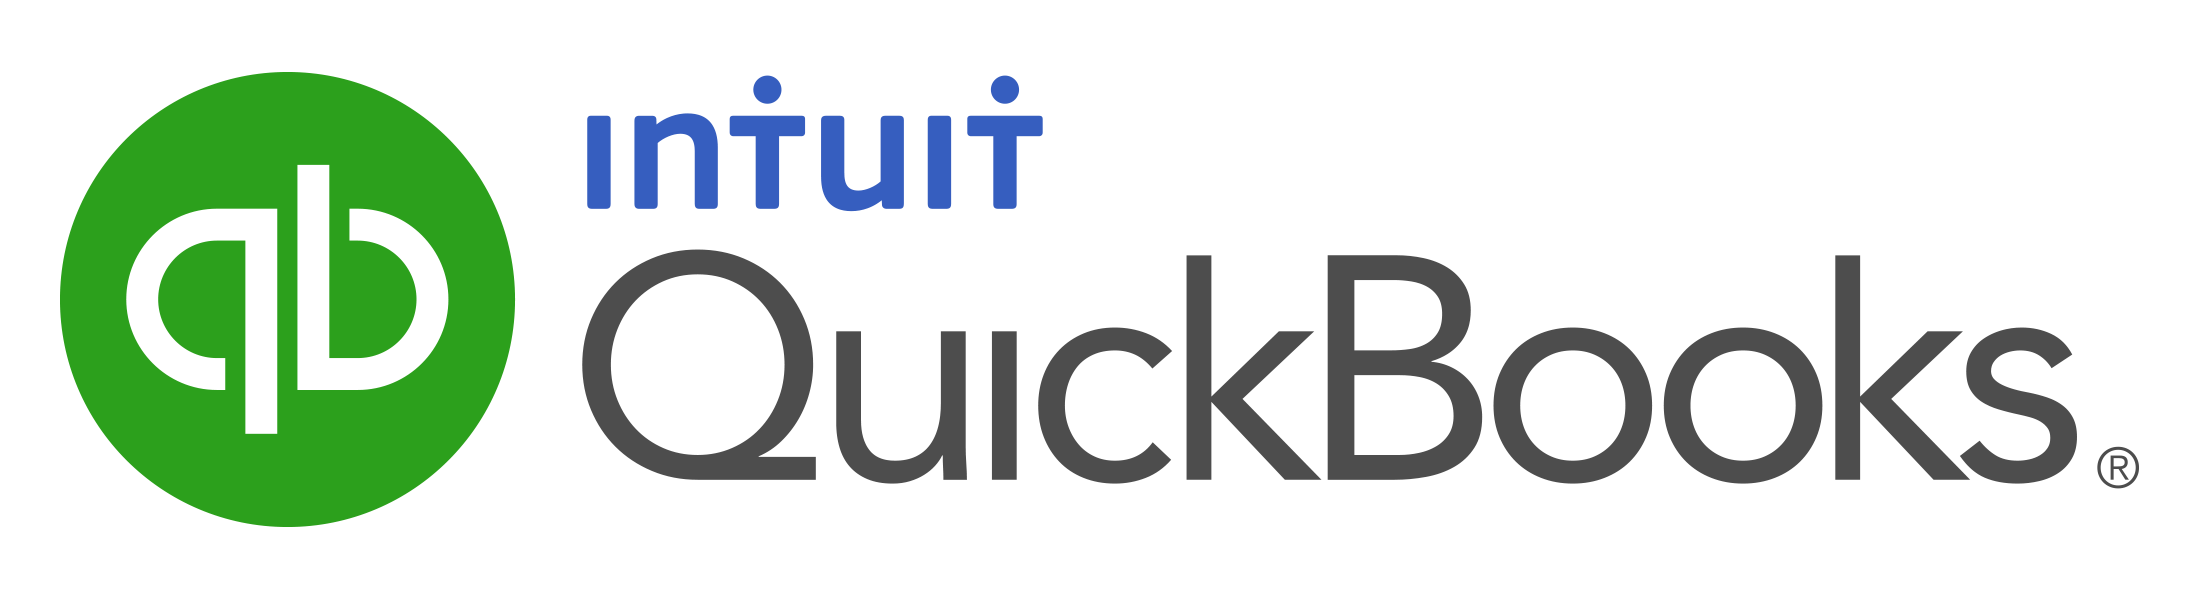 RPOWER POS | Quickbooks Integration